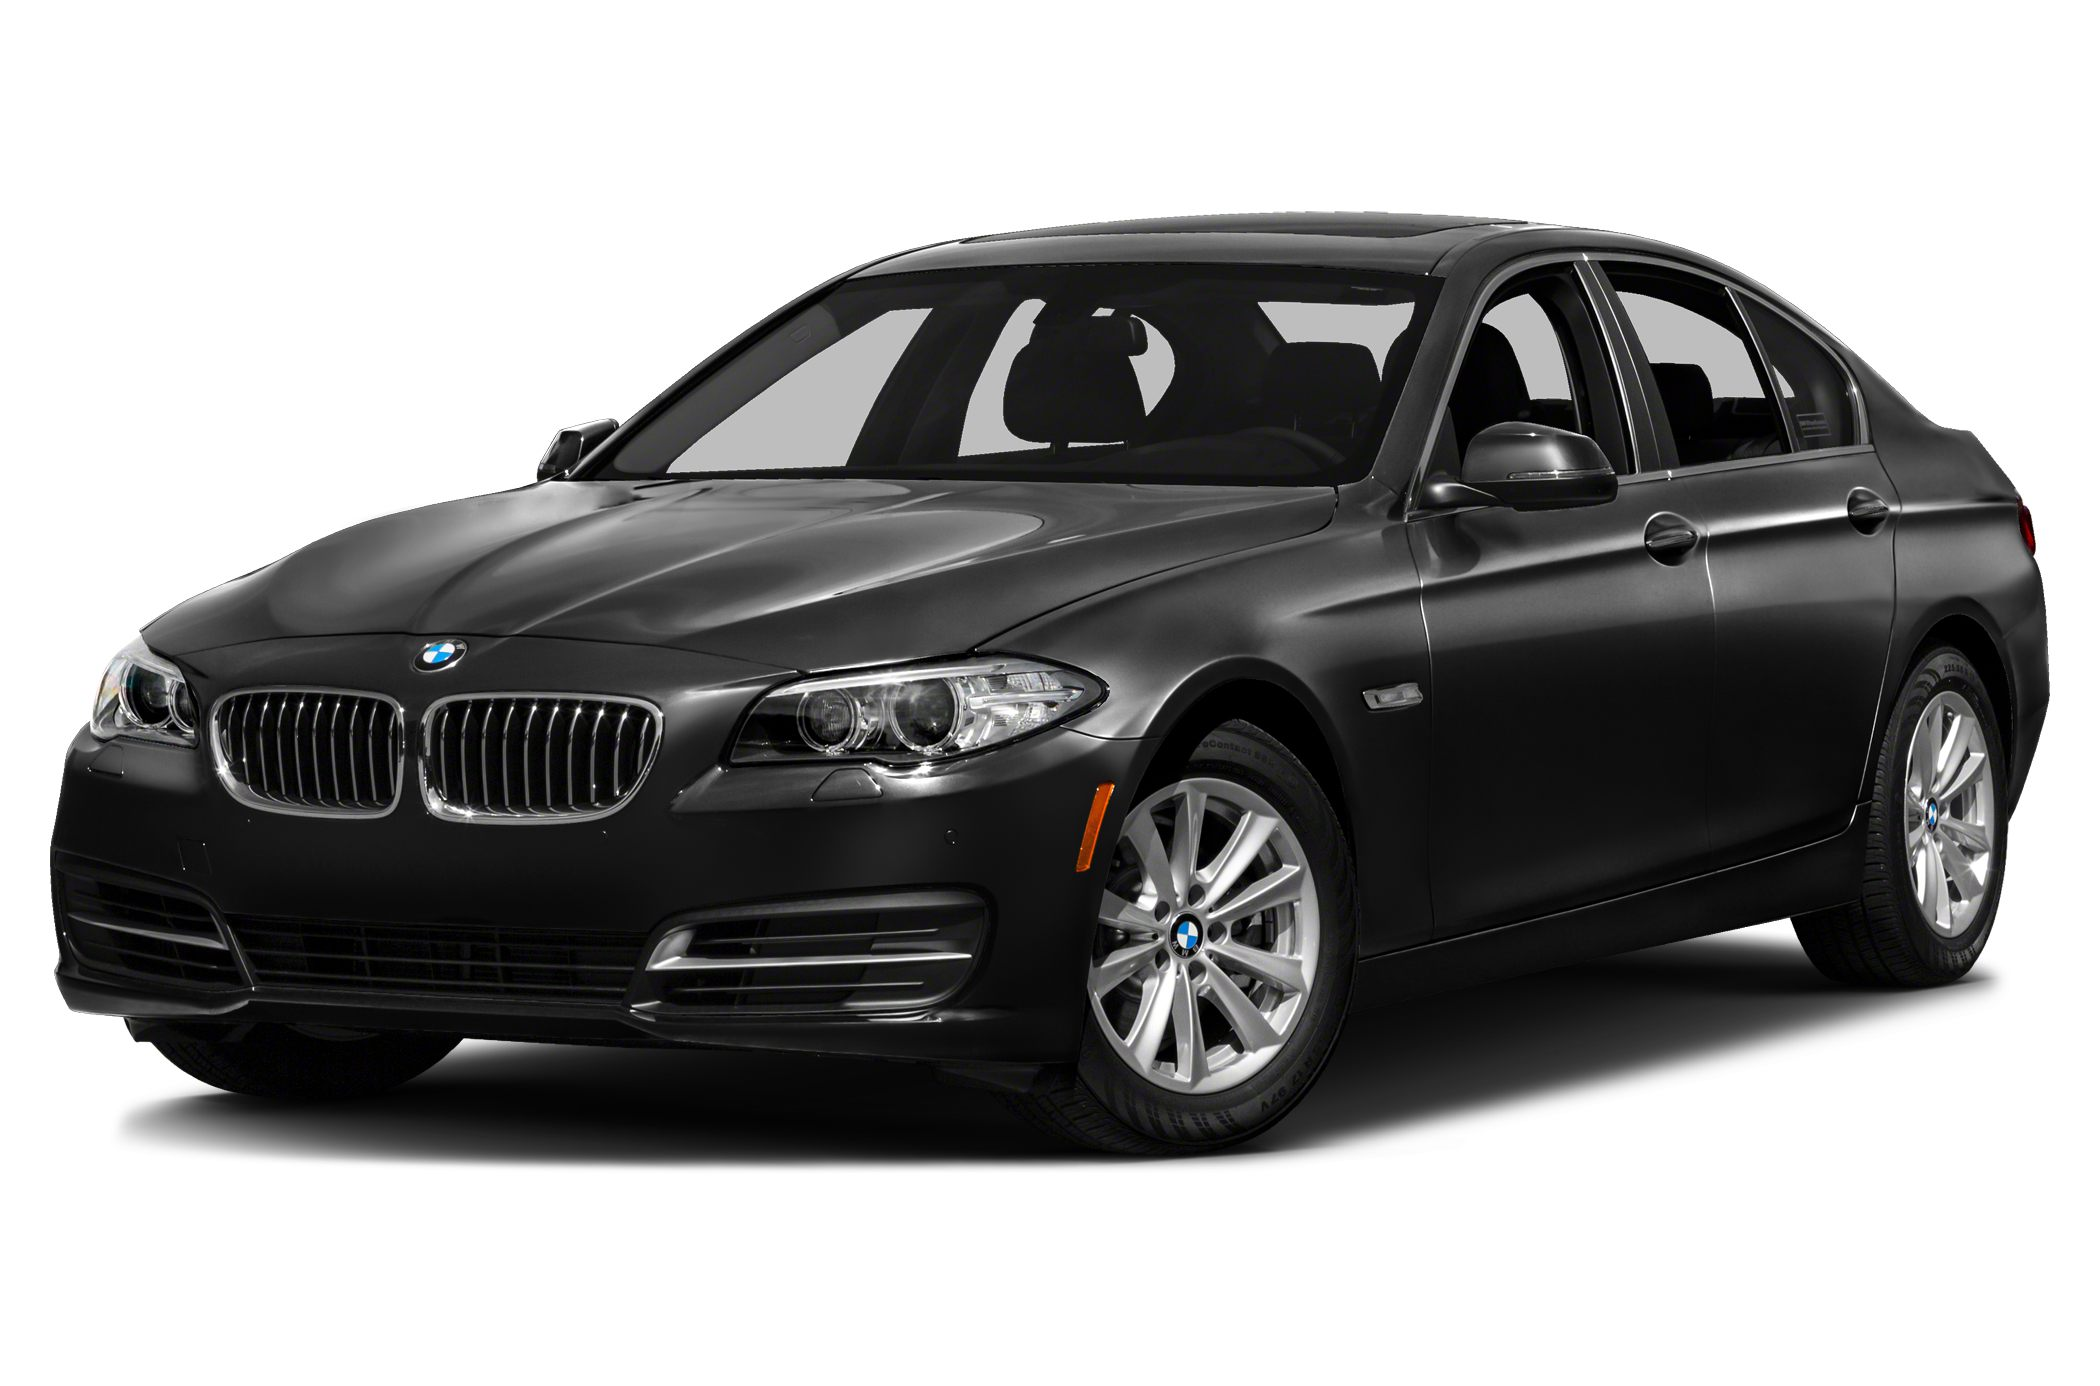 2015 BMW 550 I Sedan for sale in Tuscaloosa for $69,390 with 11 miles